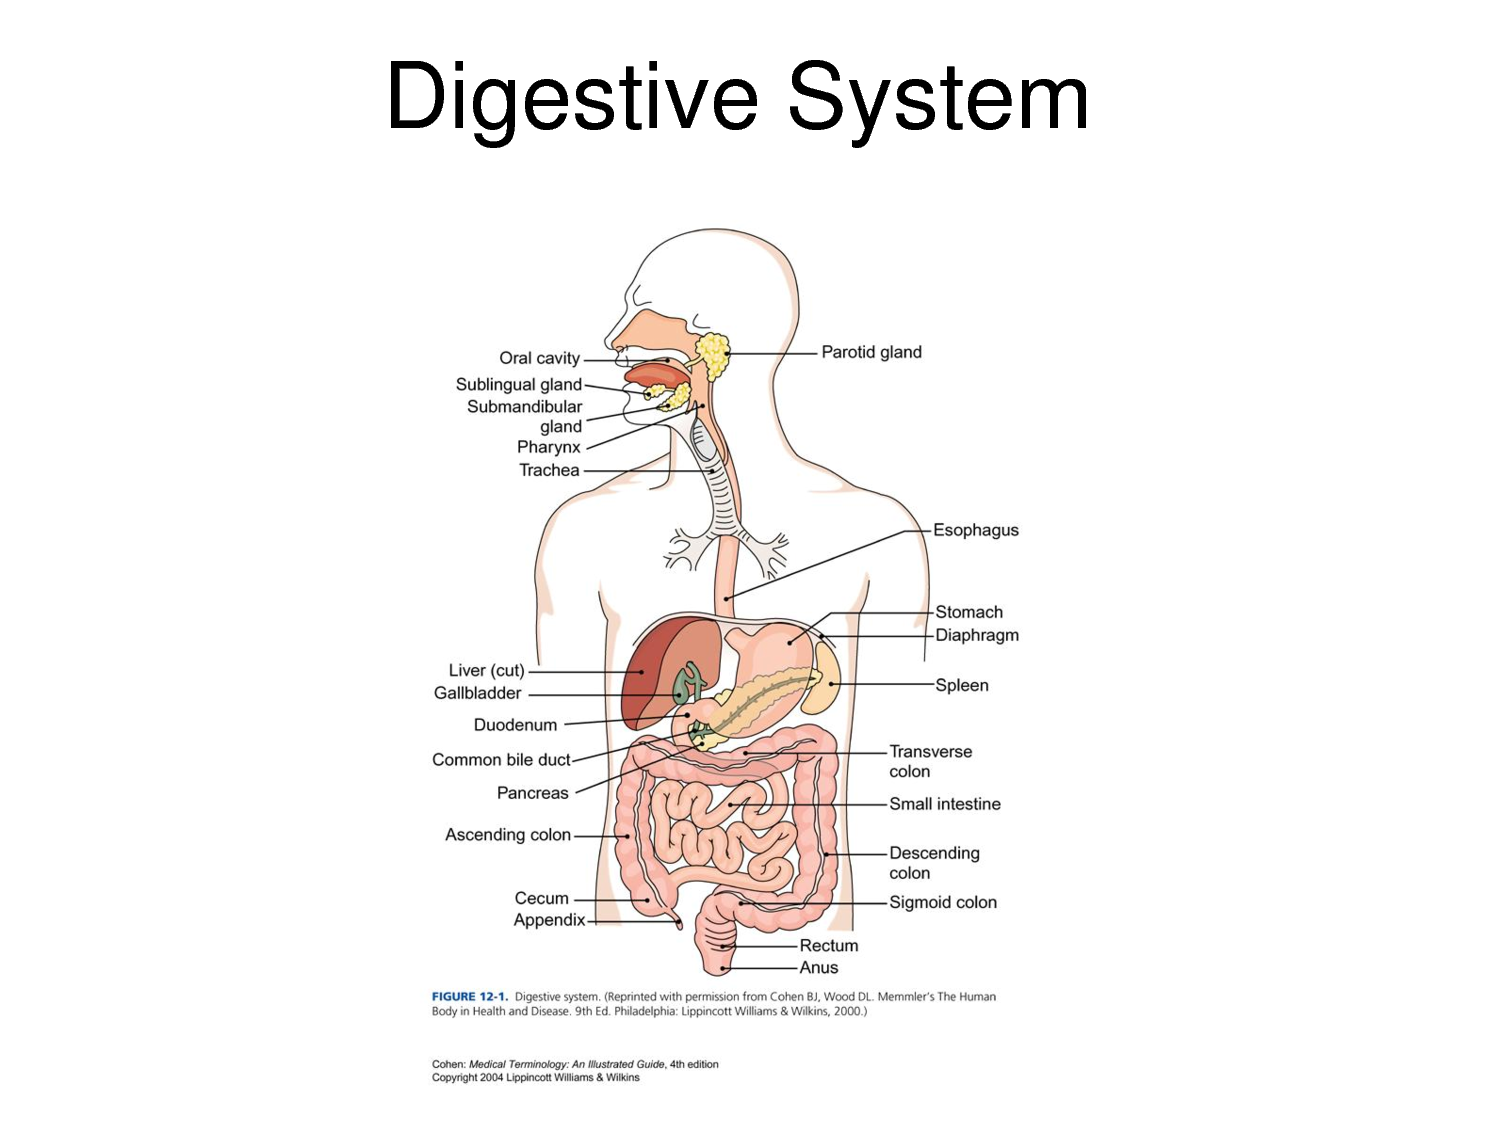 medium resolution of human digestive system labeled health medicine and anatomy reference pictures